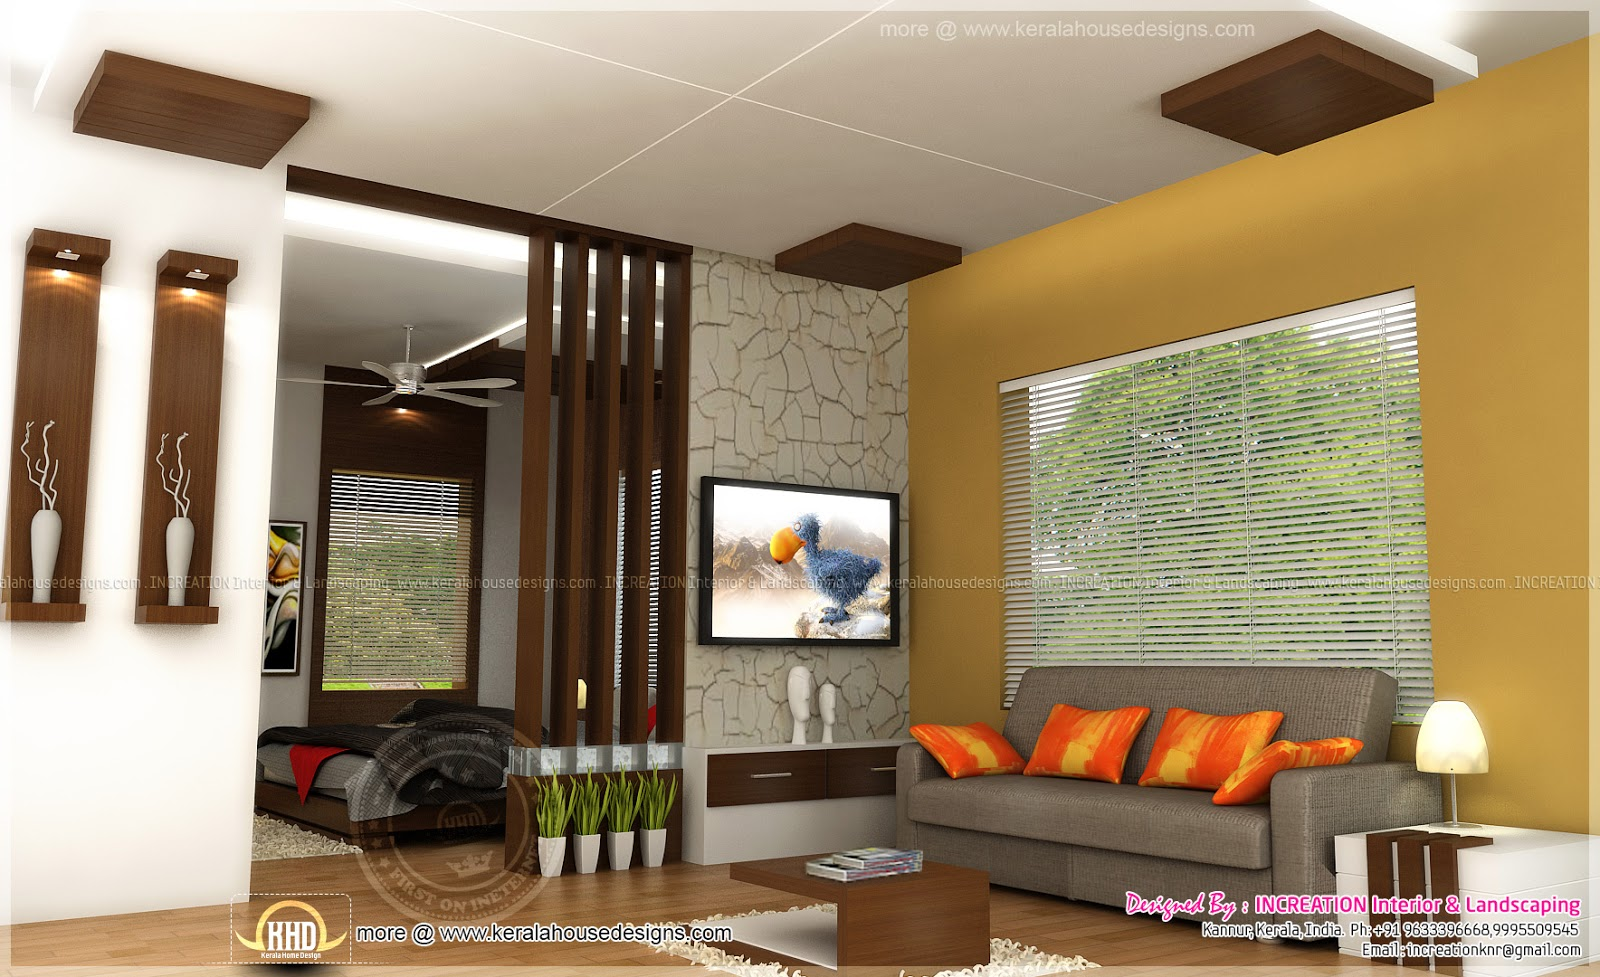 Interior designs from kannur kerala kerala home design for Home plans with interior photos